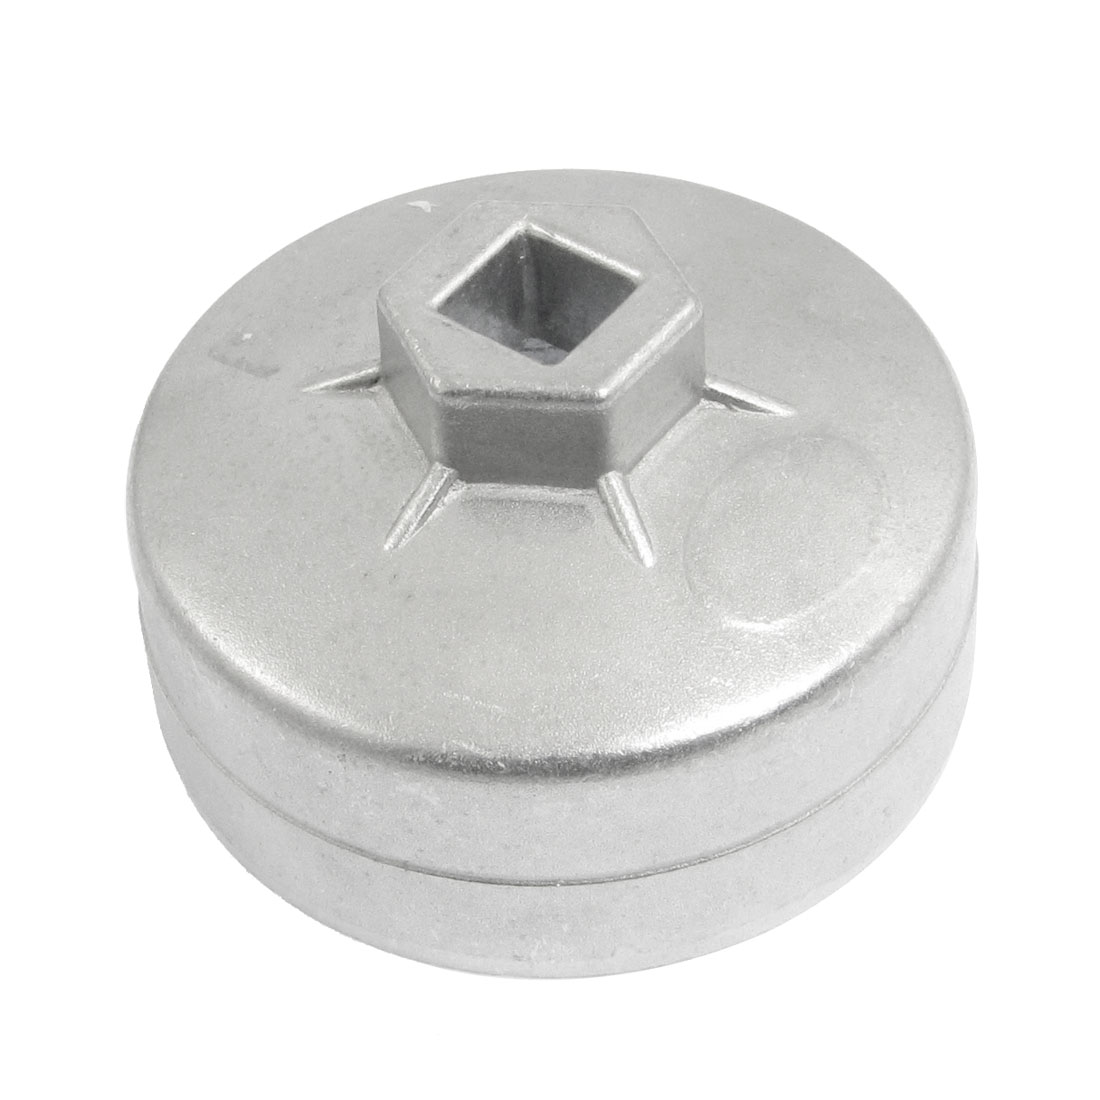 "1/2"" Square Drive 15 Flutes Cap Style Oil Filter Wrench 73mm"